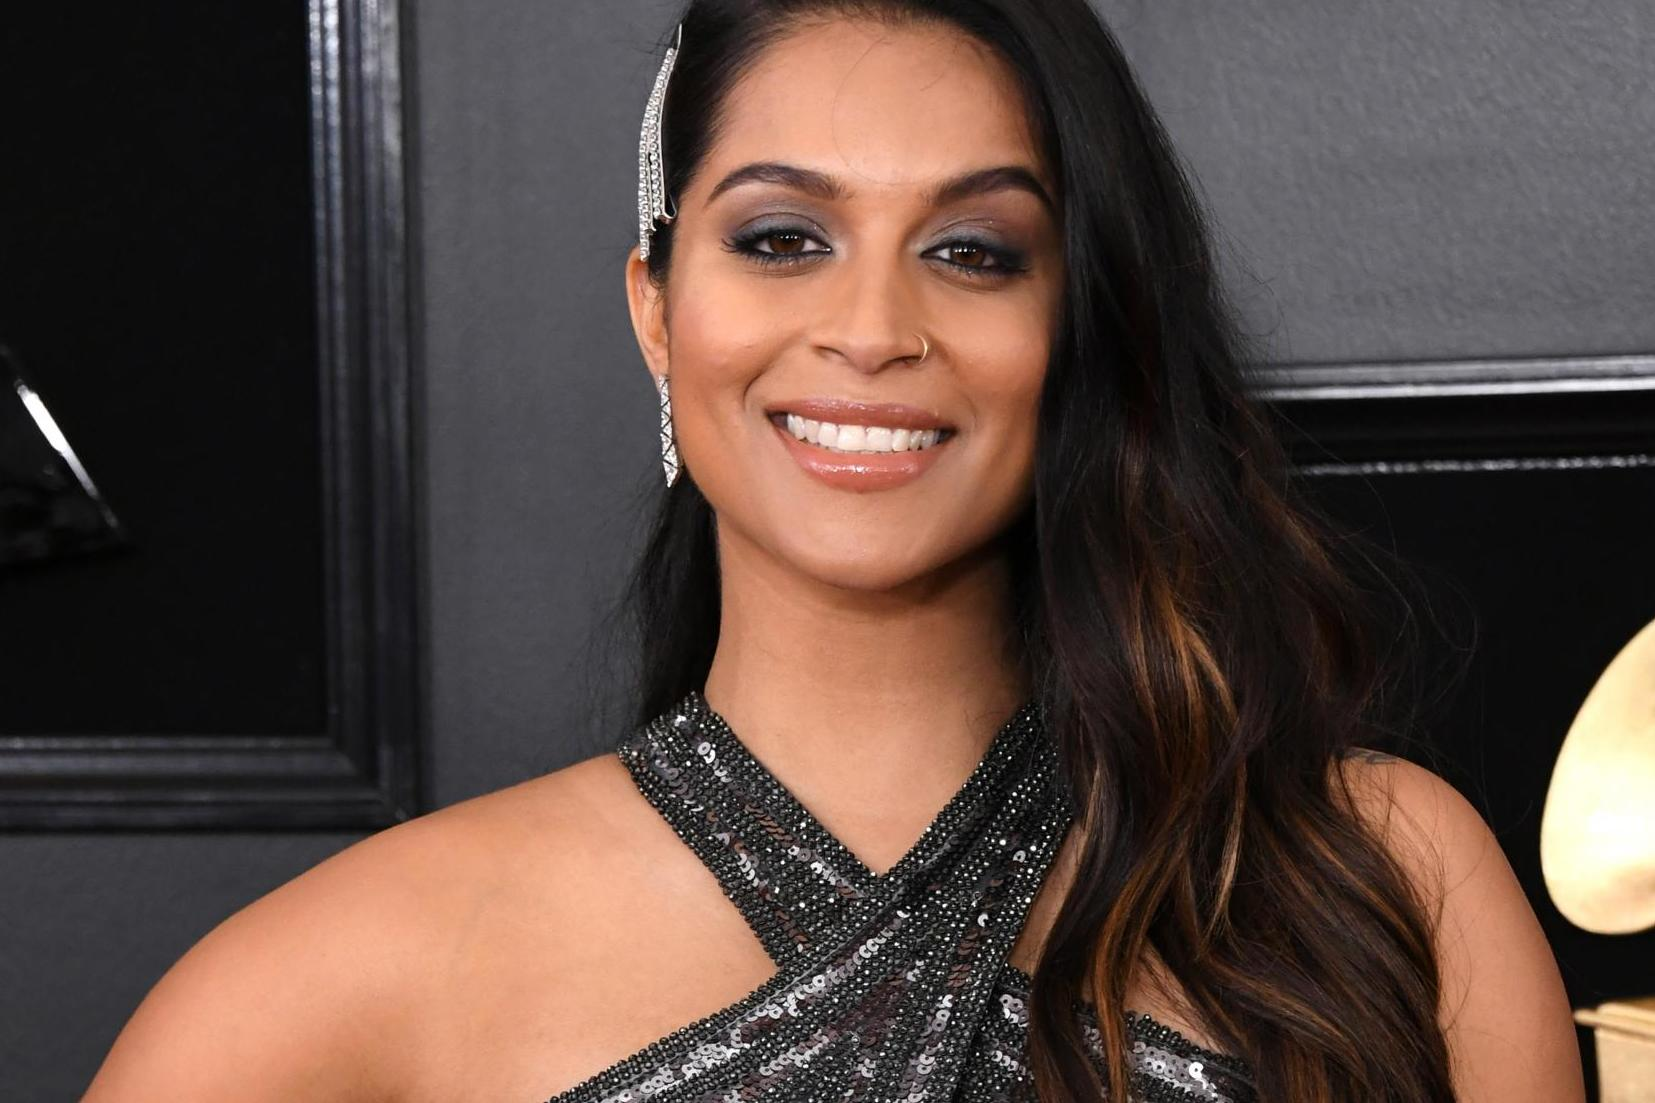 Lilly Singh Facebook: Lilly Singh Comes Out As Bisexual In Inspiring Tweet